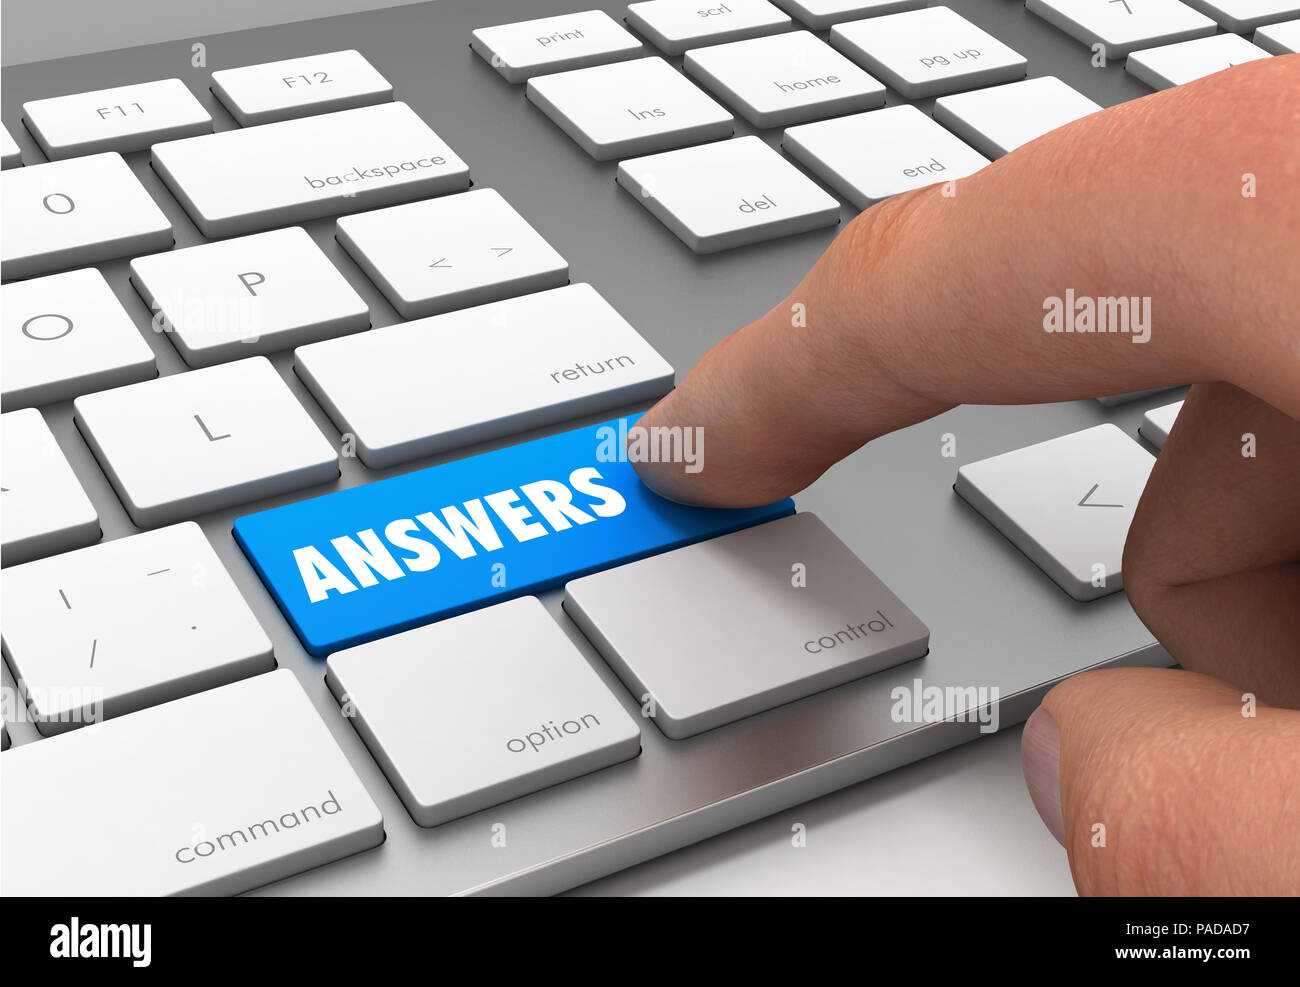 answers button concept 3d illustration - Stock Image